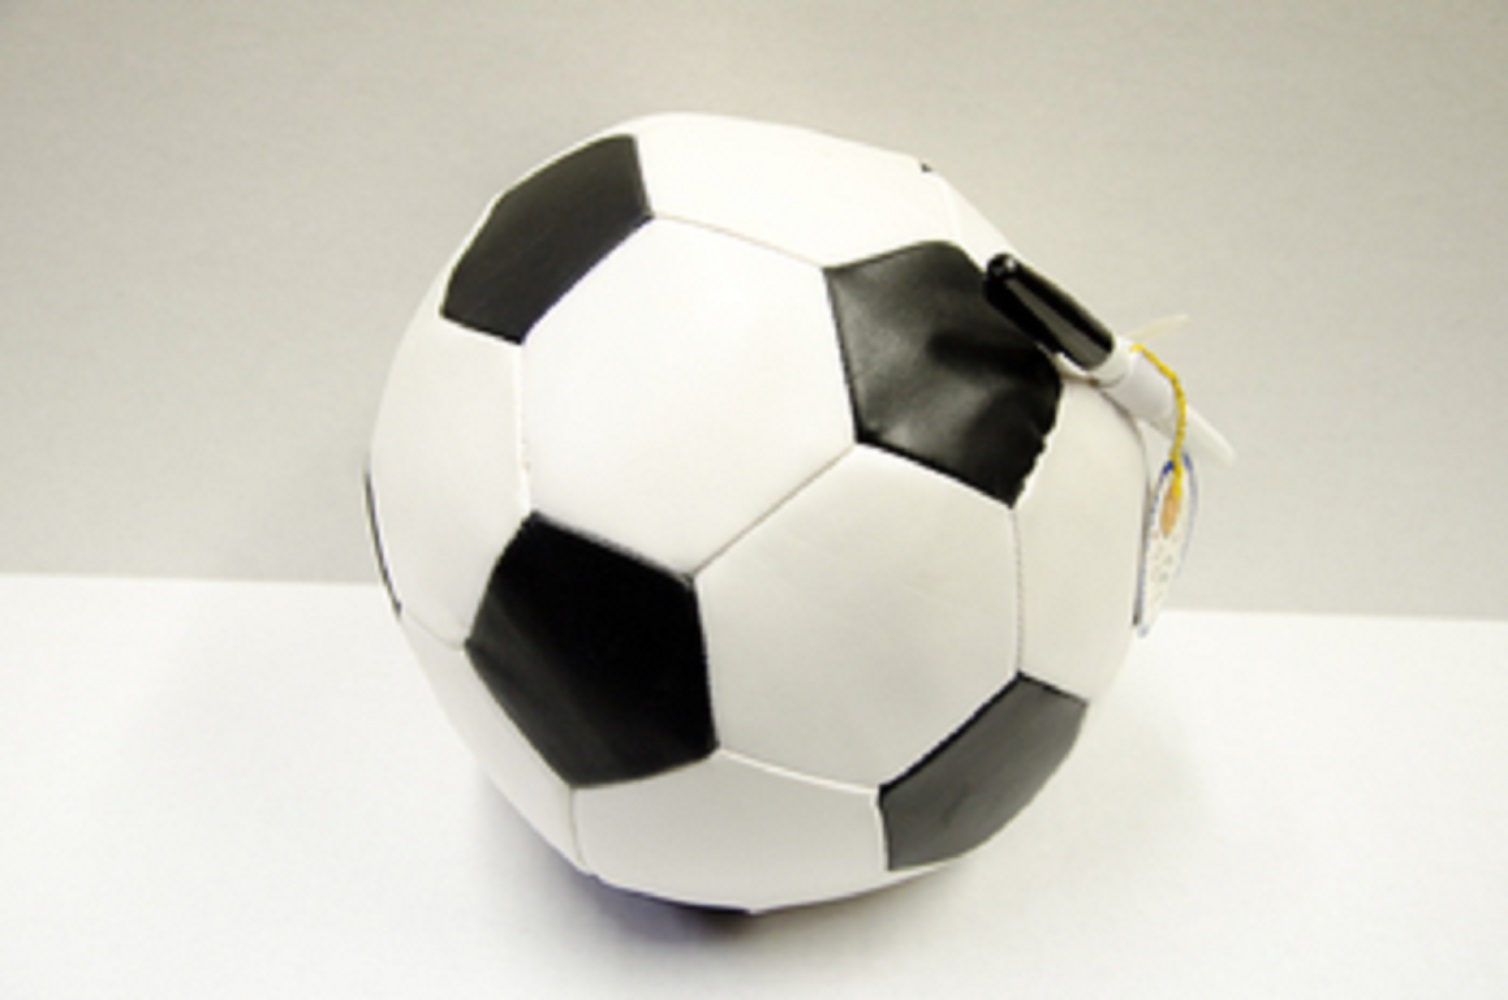 Bunk Junk Soccer Ball Bag